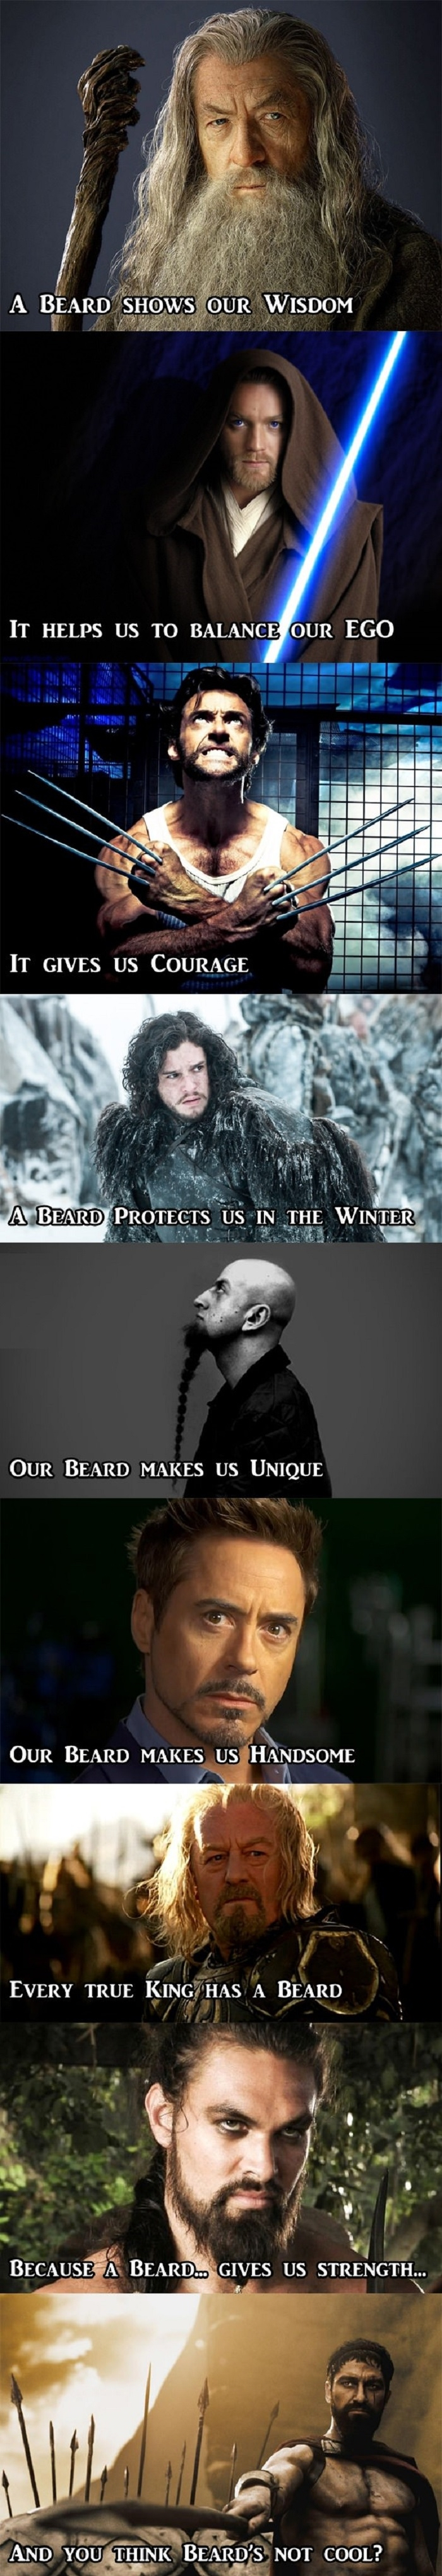 So, beard's are not cool?